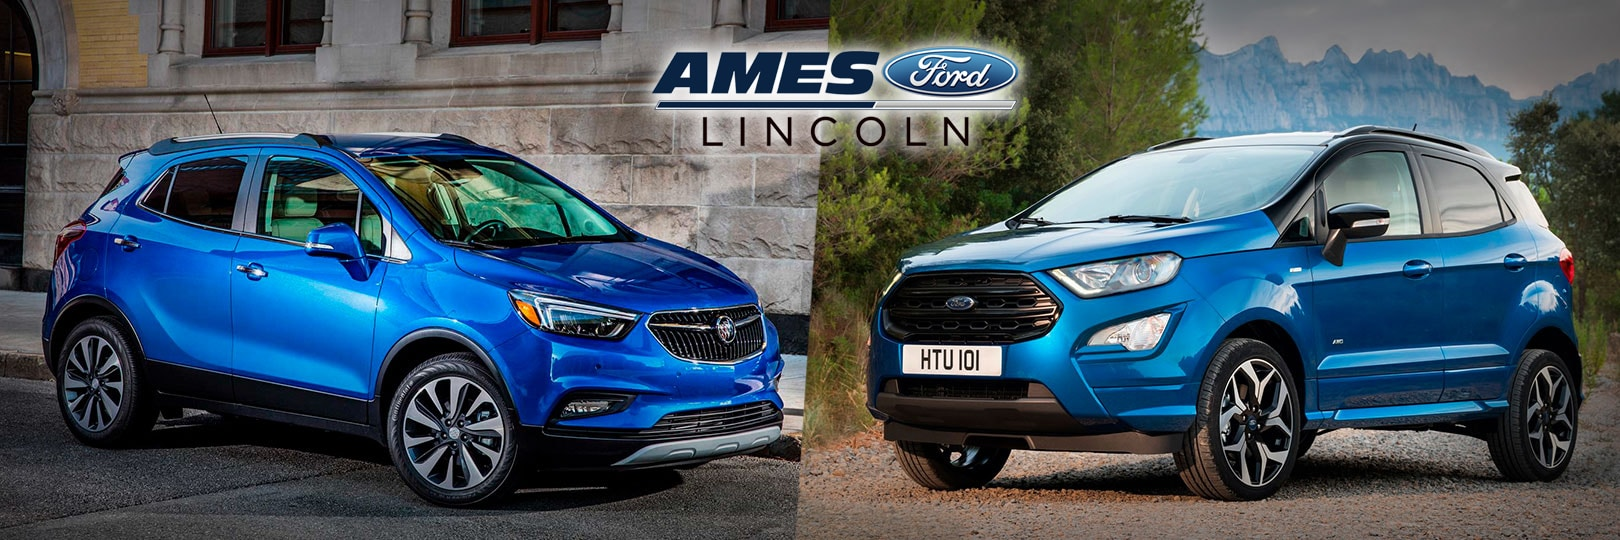 Ford Dealership Des Moines >> Ford EcoSport vs Buick Encore Des Moines, IA | Ames Ford ...